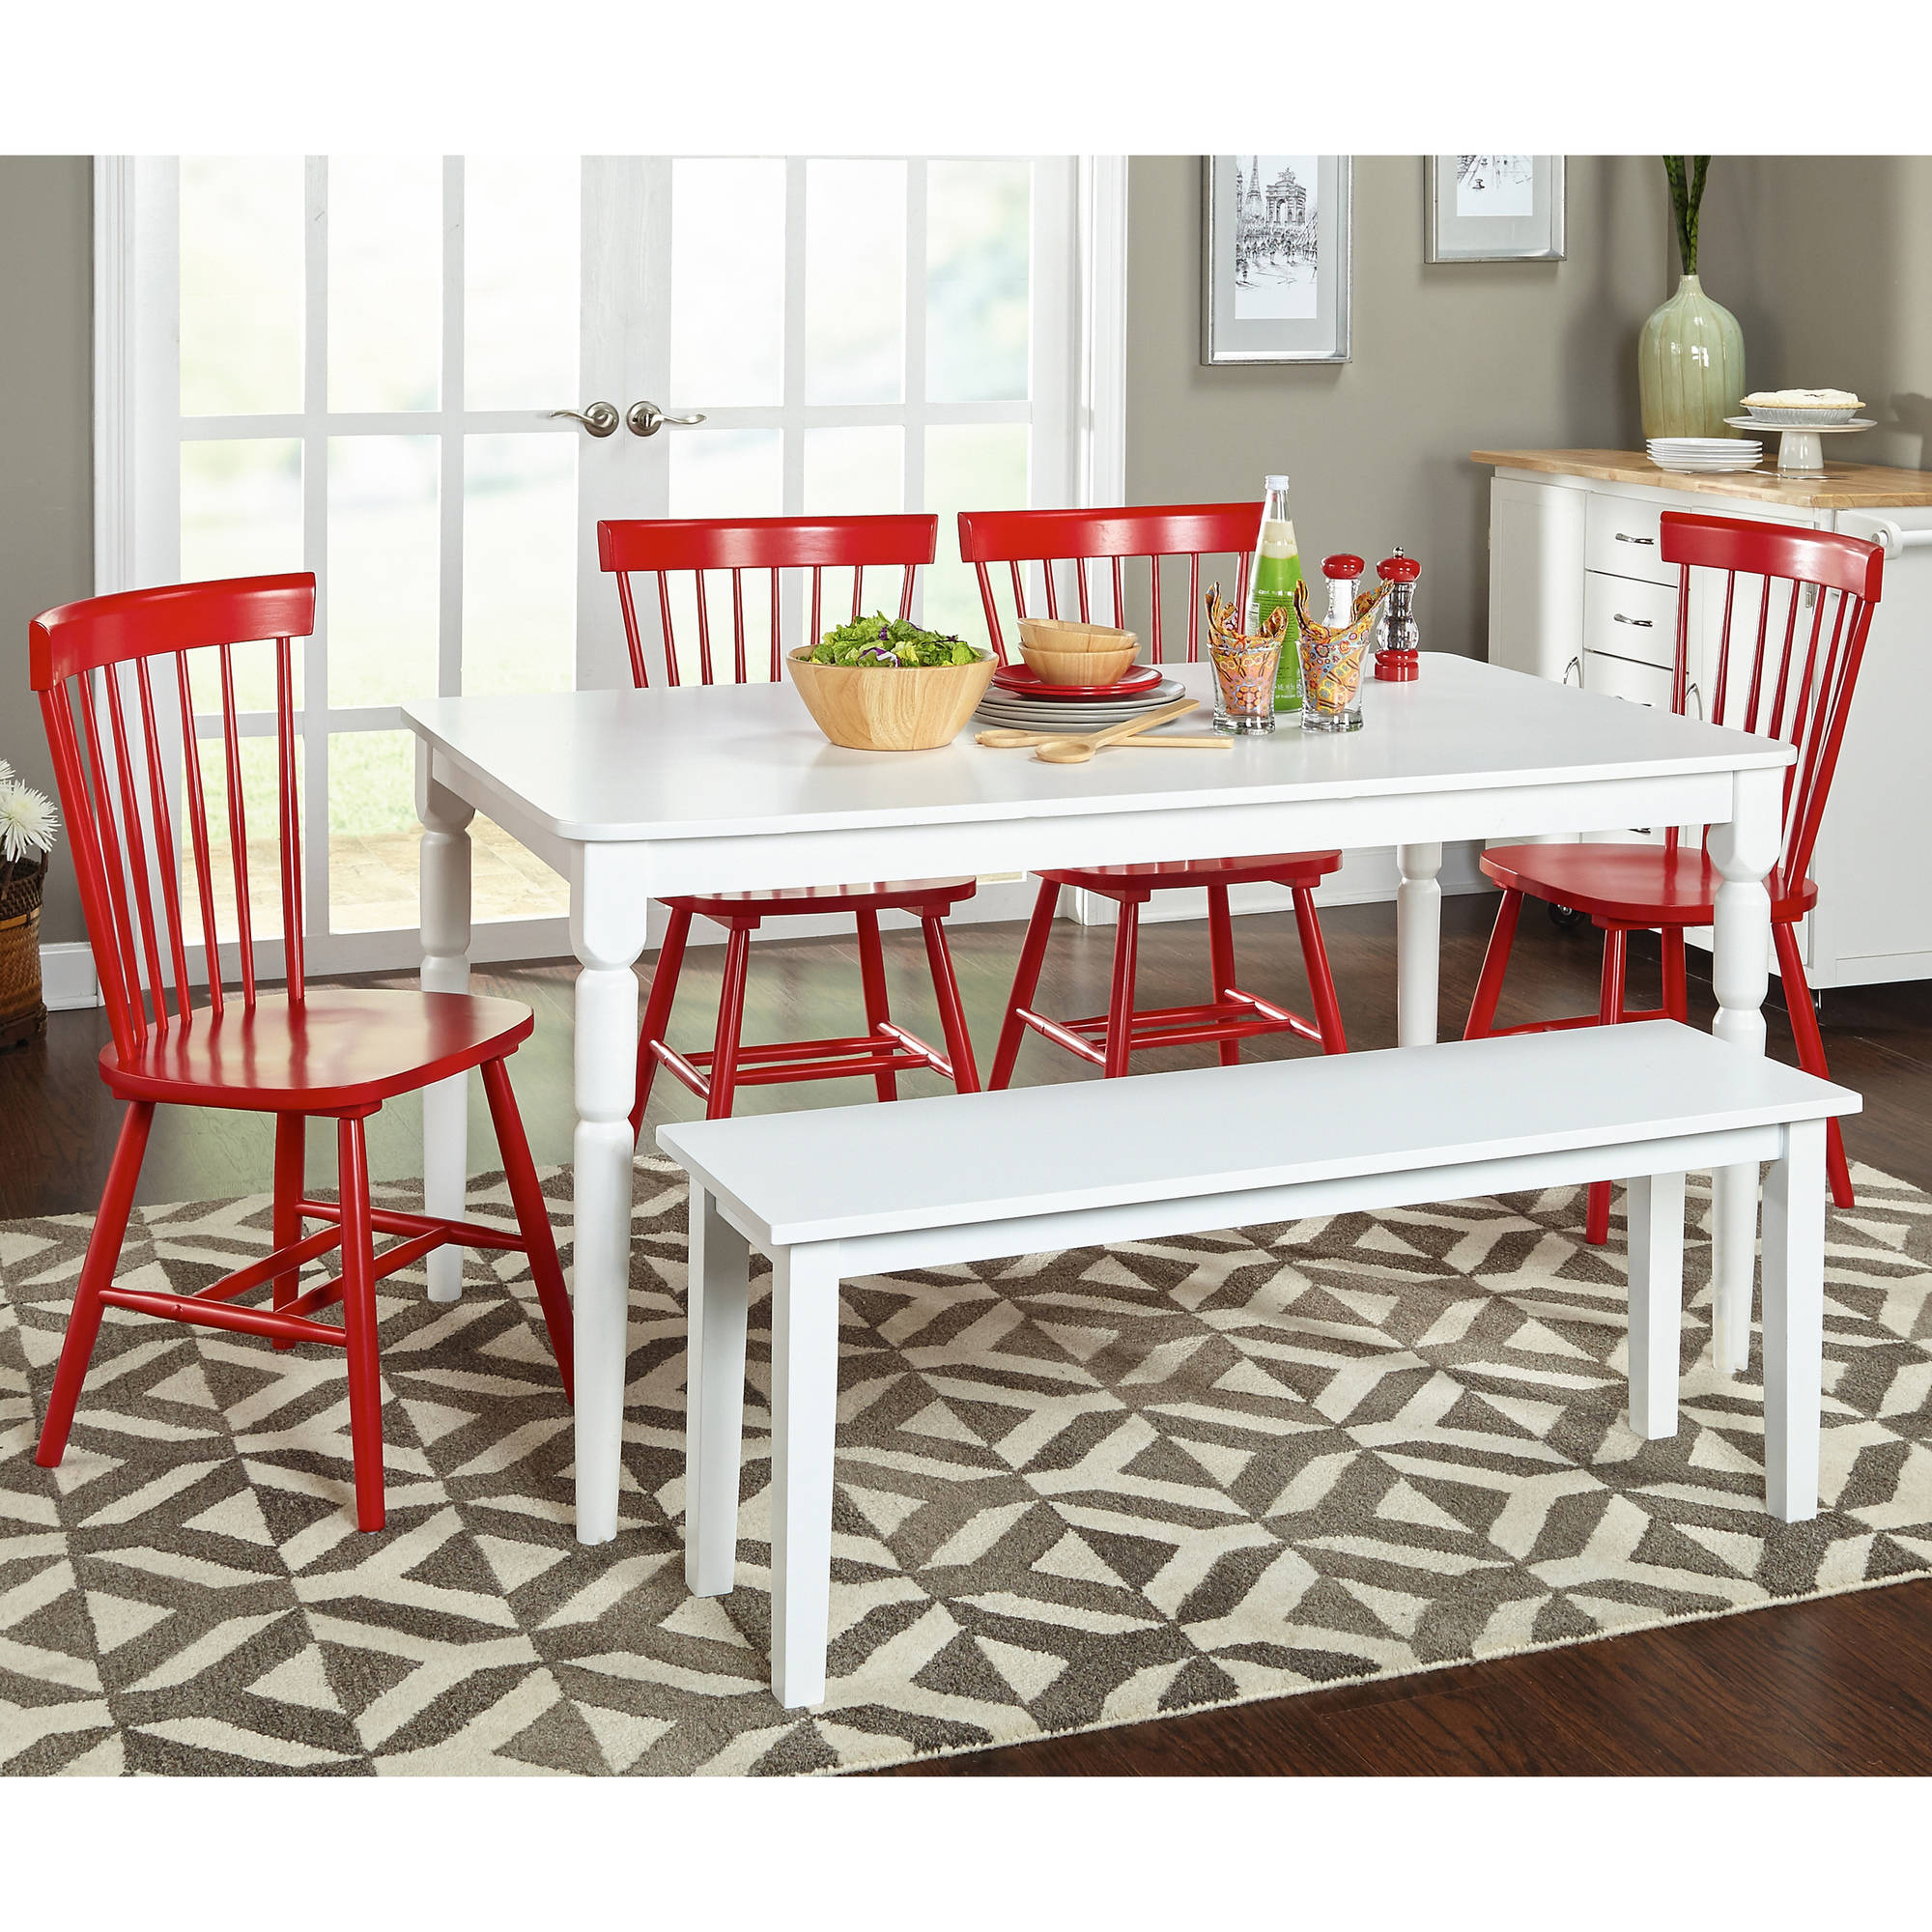 Venice 6-Piece Dining Set with bench, Multiple Colors